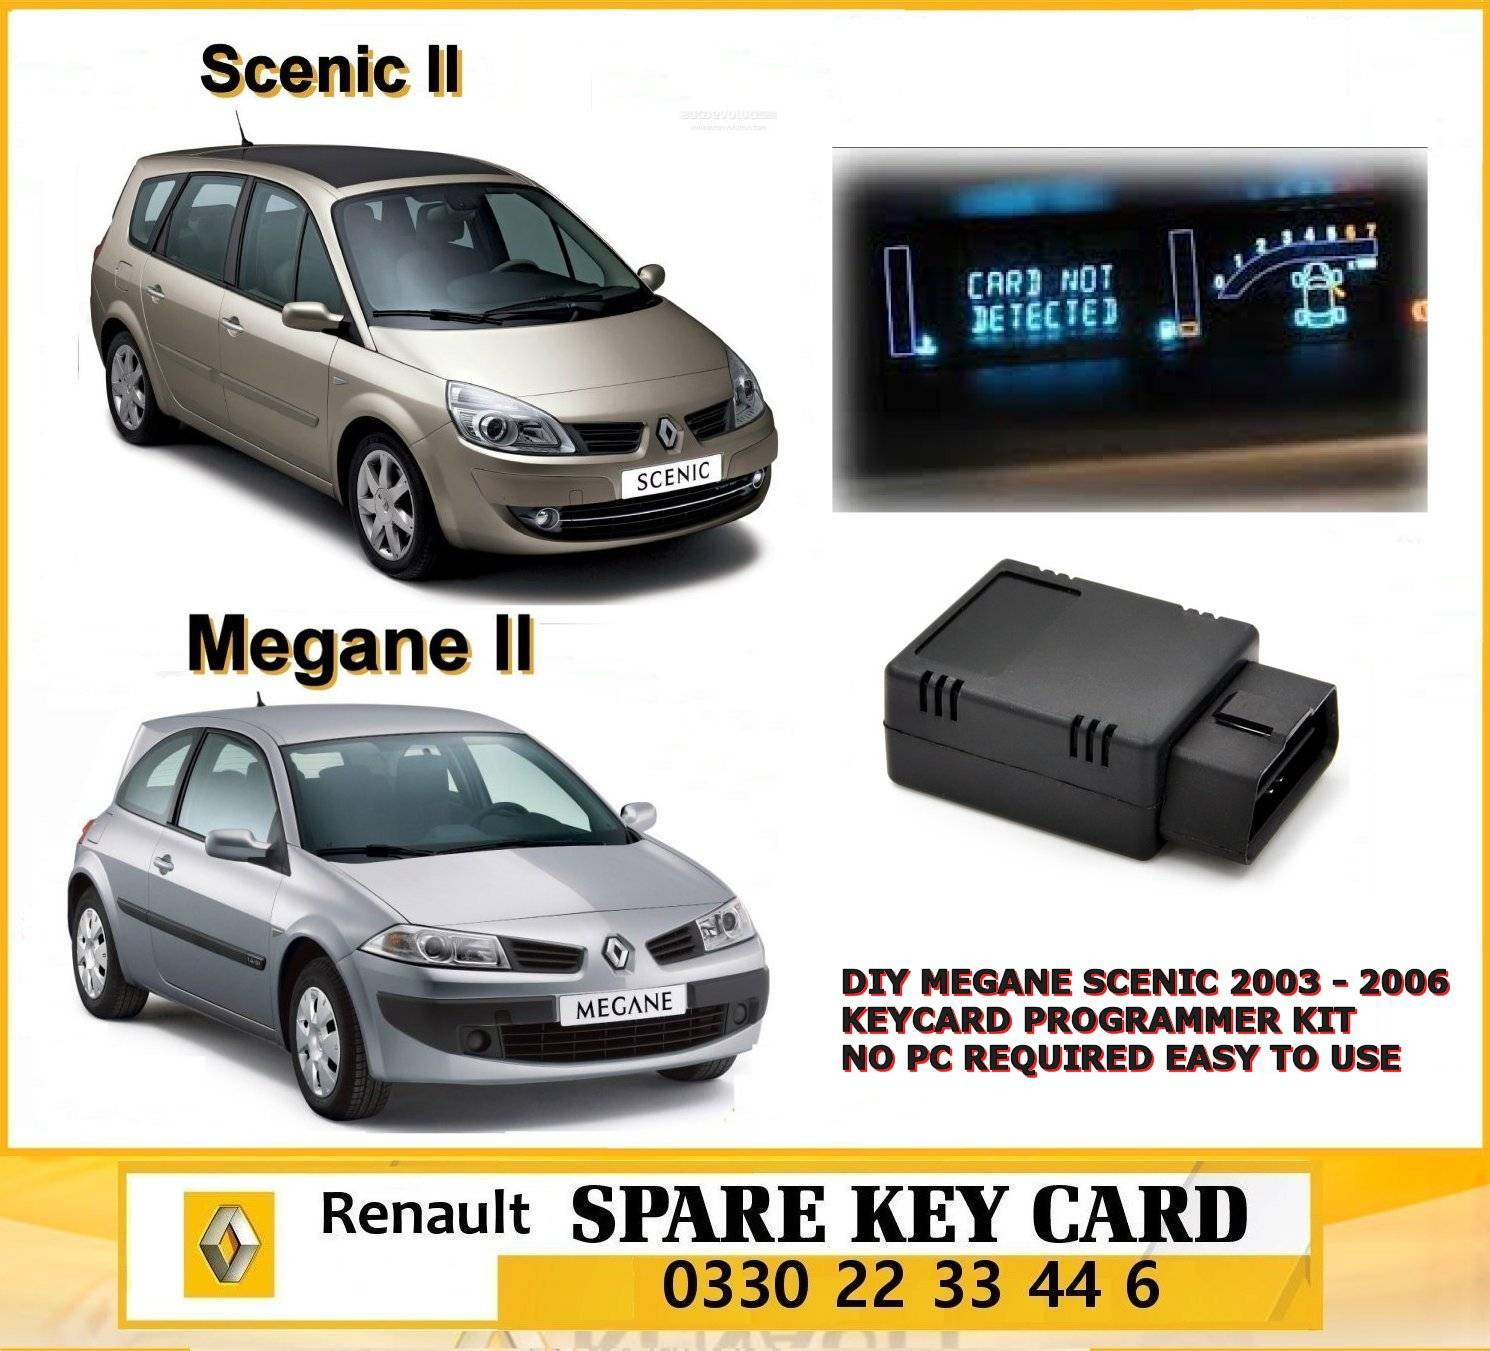 diy megane scenic 2003 2006 keyboard programmer non pc required full support key card renault. Black Bedroom Furniture Sets. Home Design Ideas